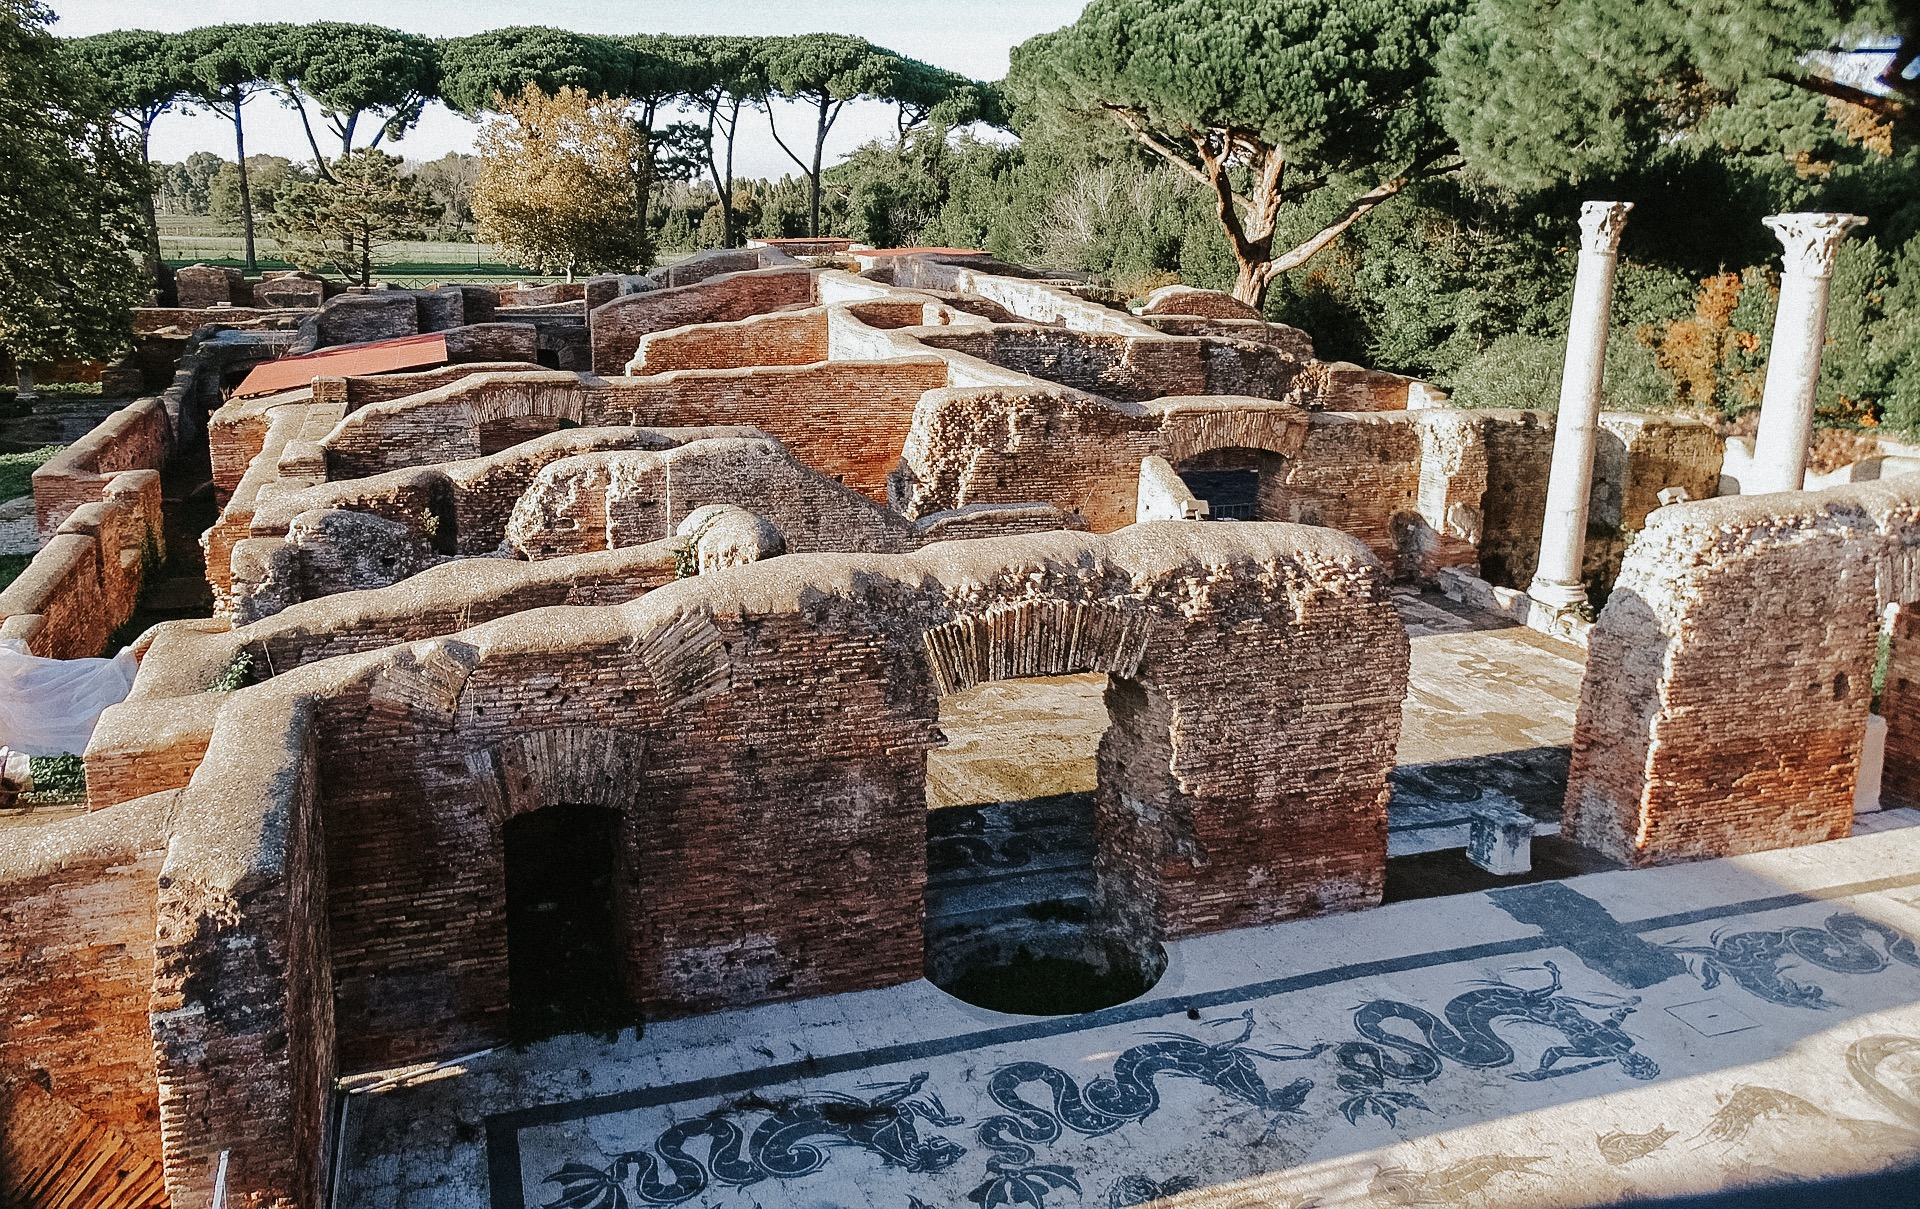 Ostia Antica from above